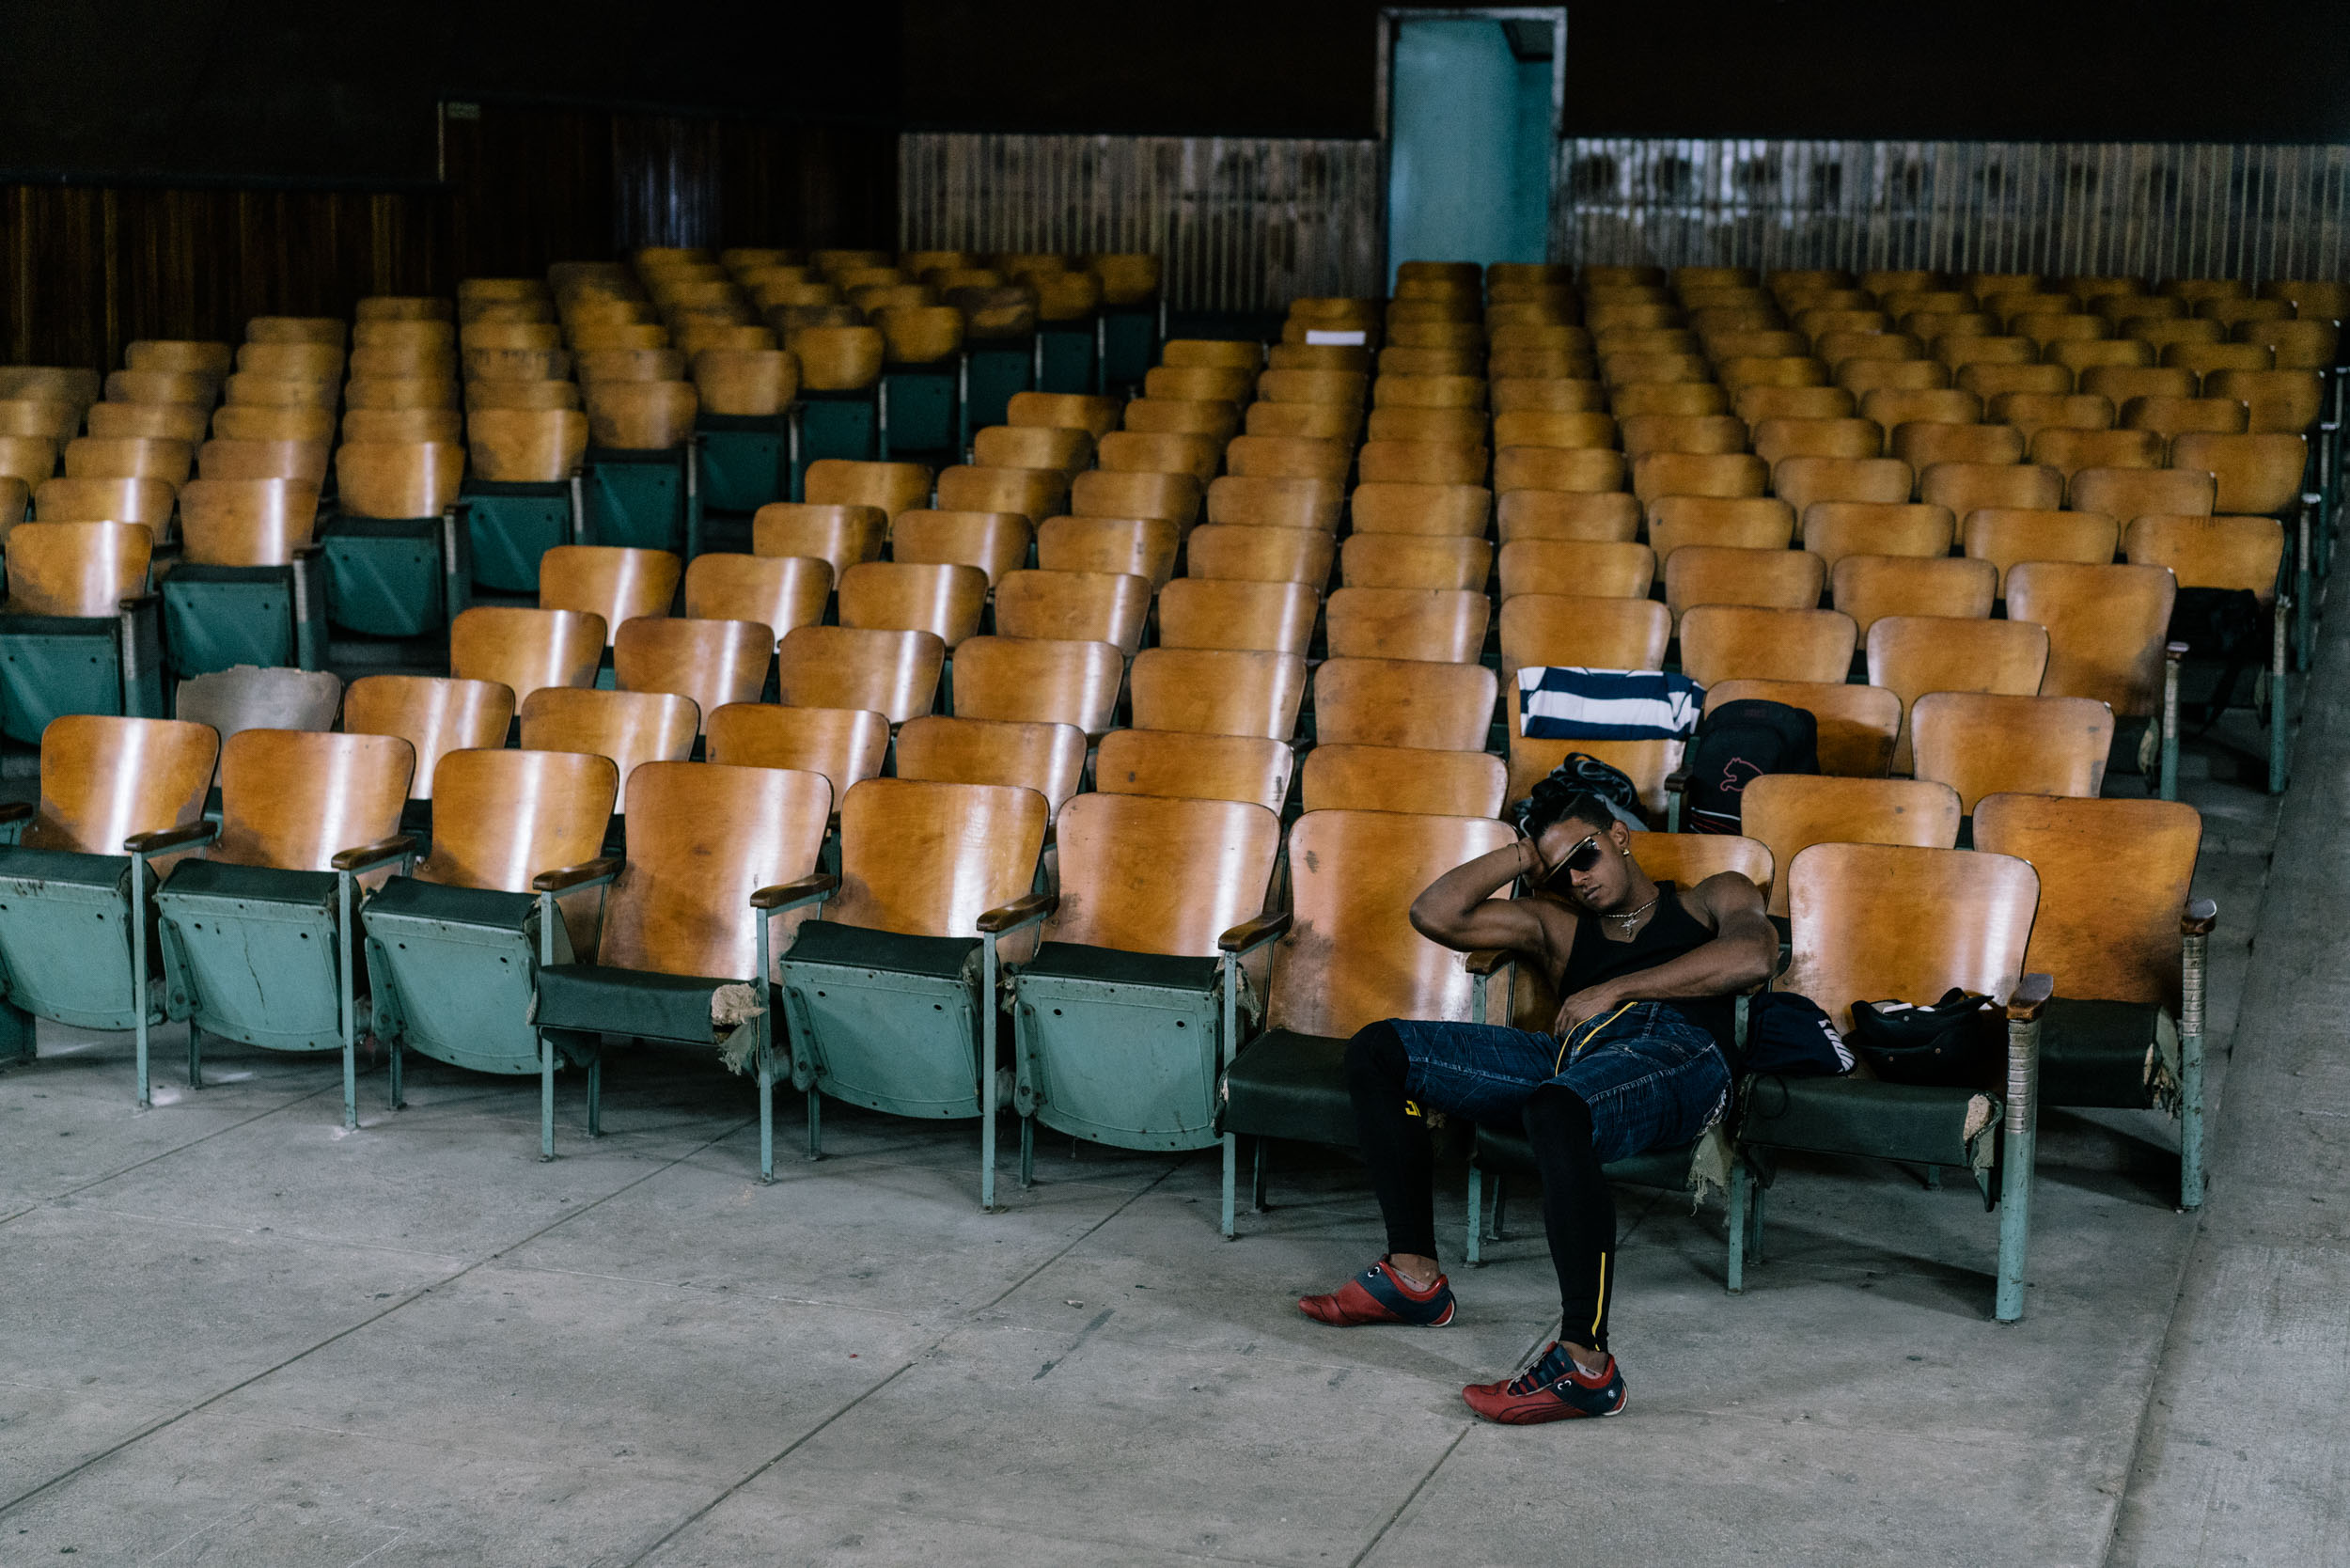 man asleep in chair in empty theater seats